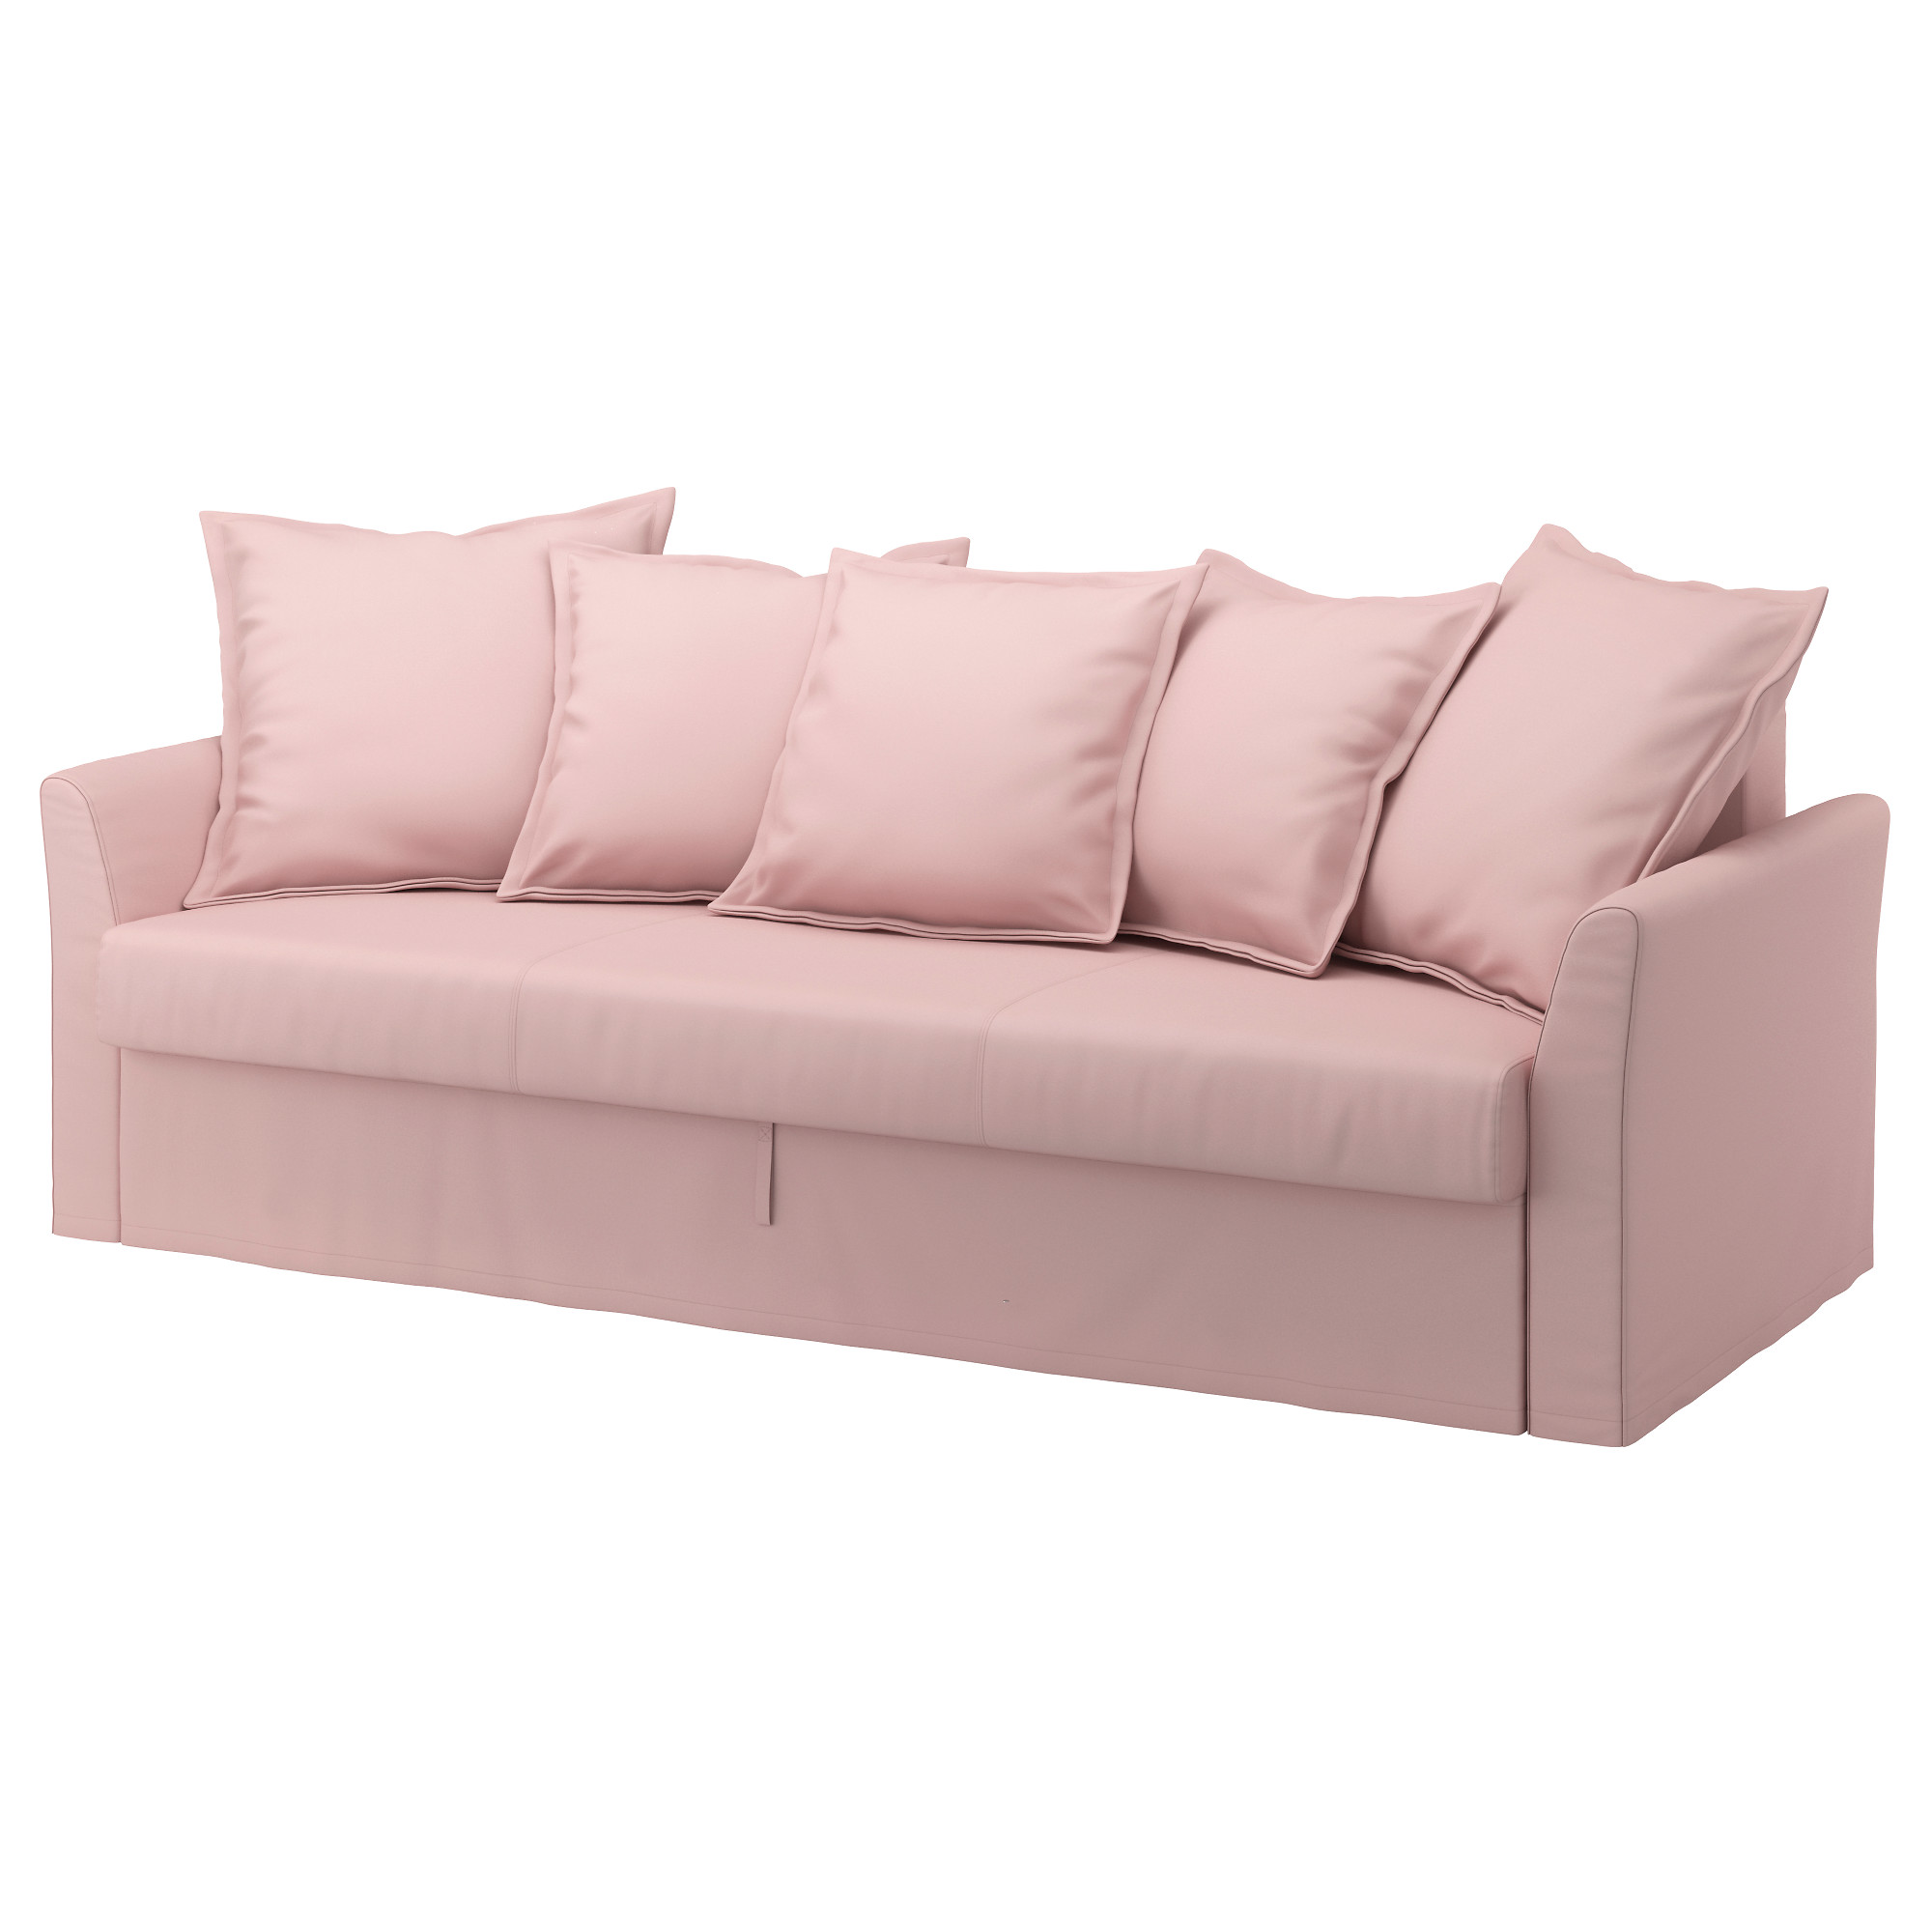 Furniture & Rug Foam Sleeper Chair Moheda Sofa Bed